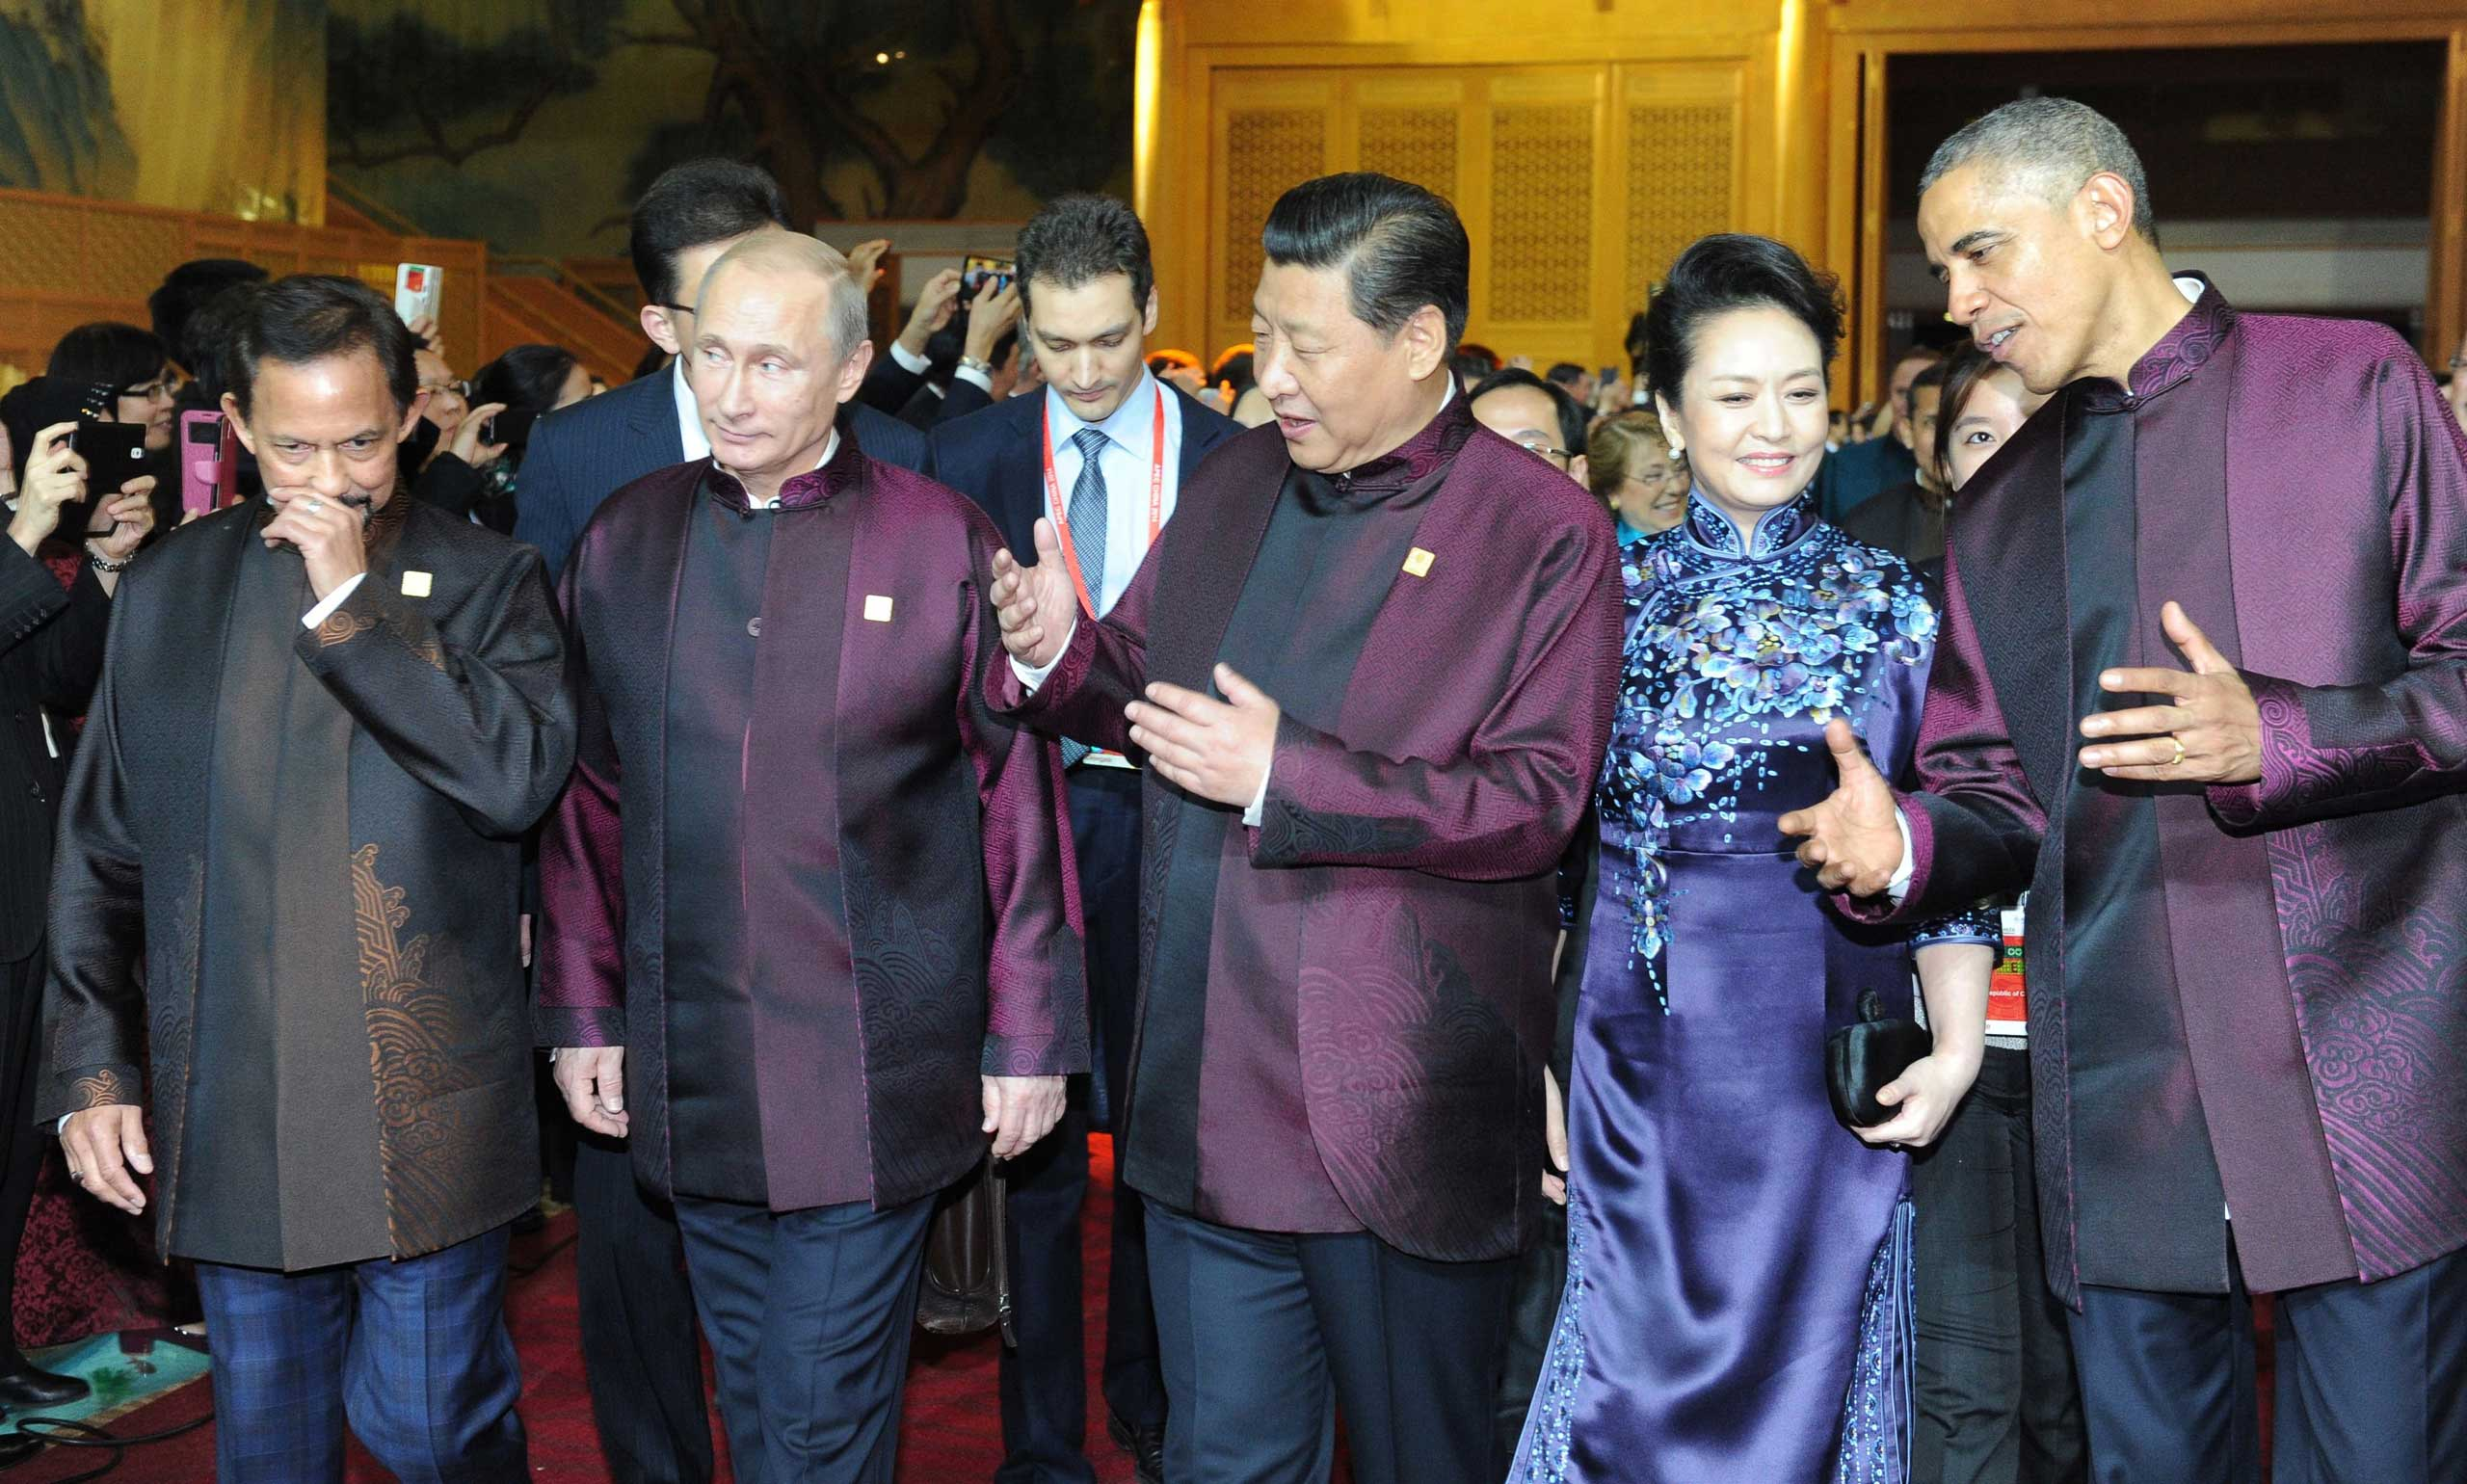 Brunei Sultan Hassanal Bolkiah, Russian President Vladimir Putin, Chinese President Xi Jinping, his wife, Peng Liyuan, and President Barack Obama walk before the ceremonial reception held for members of the APEC Economic Leaders' Meeting in Beijing on Nov. 10, 2014.